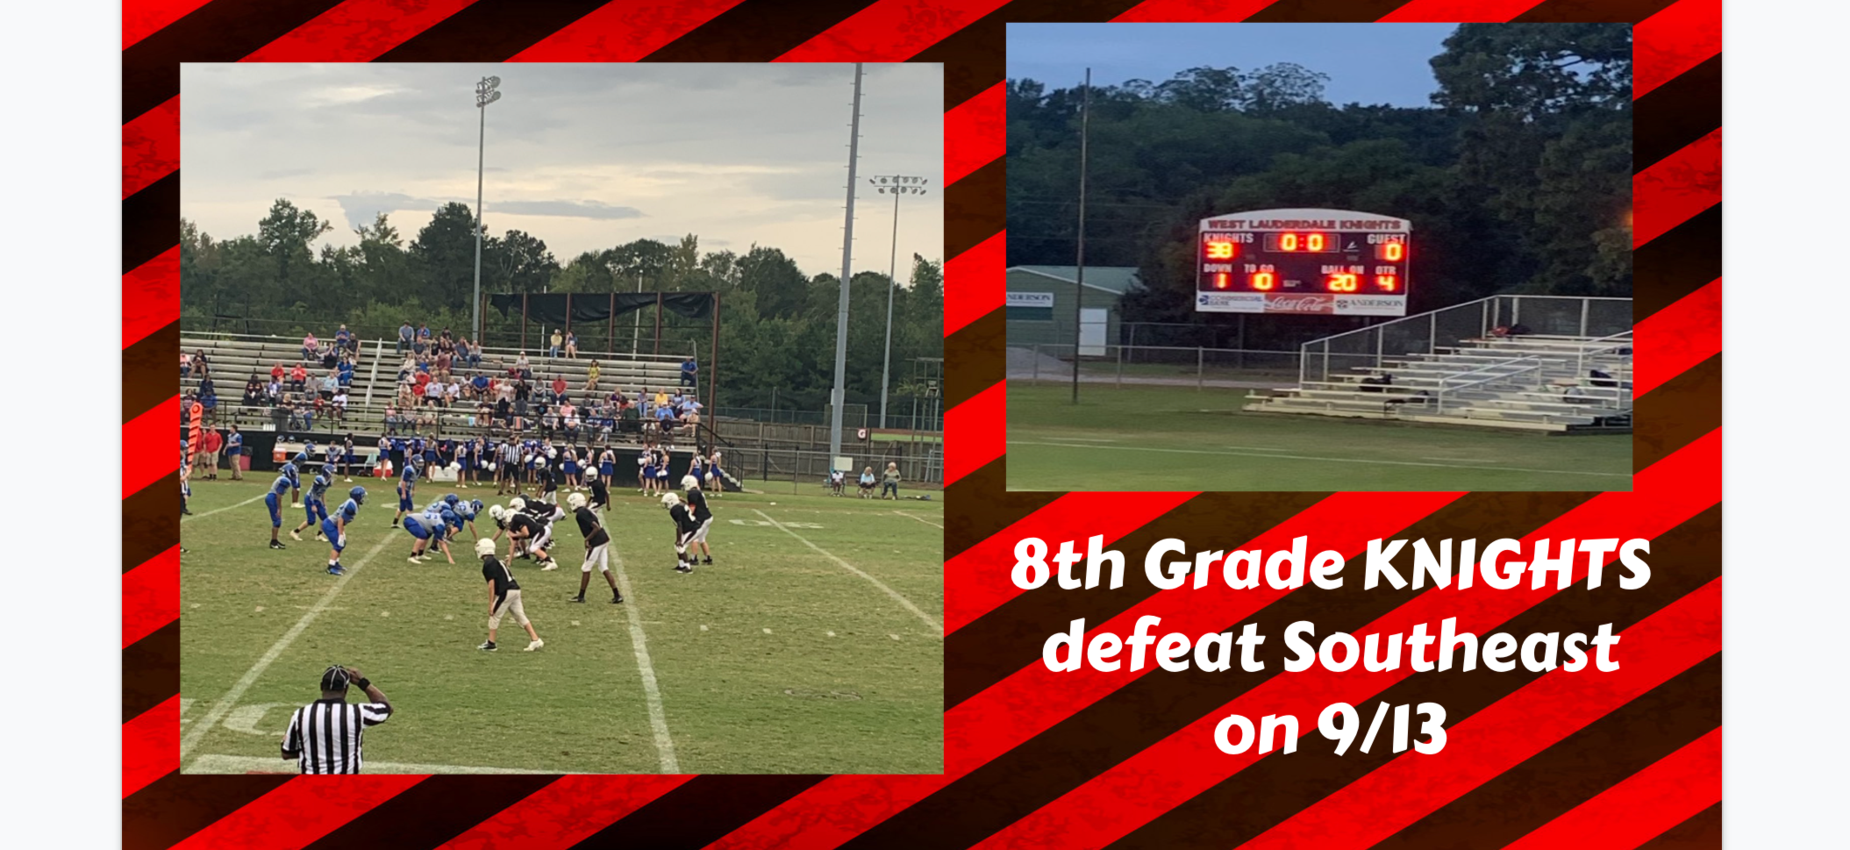 8th grade Knights defeat Southeast in football